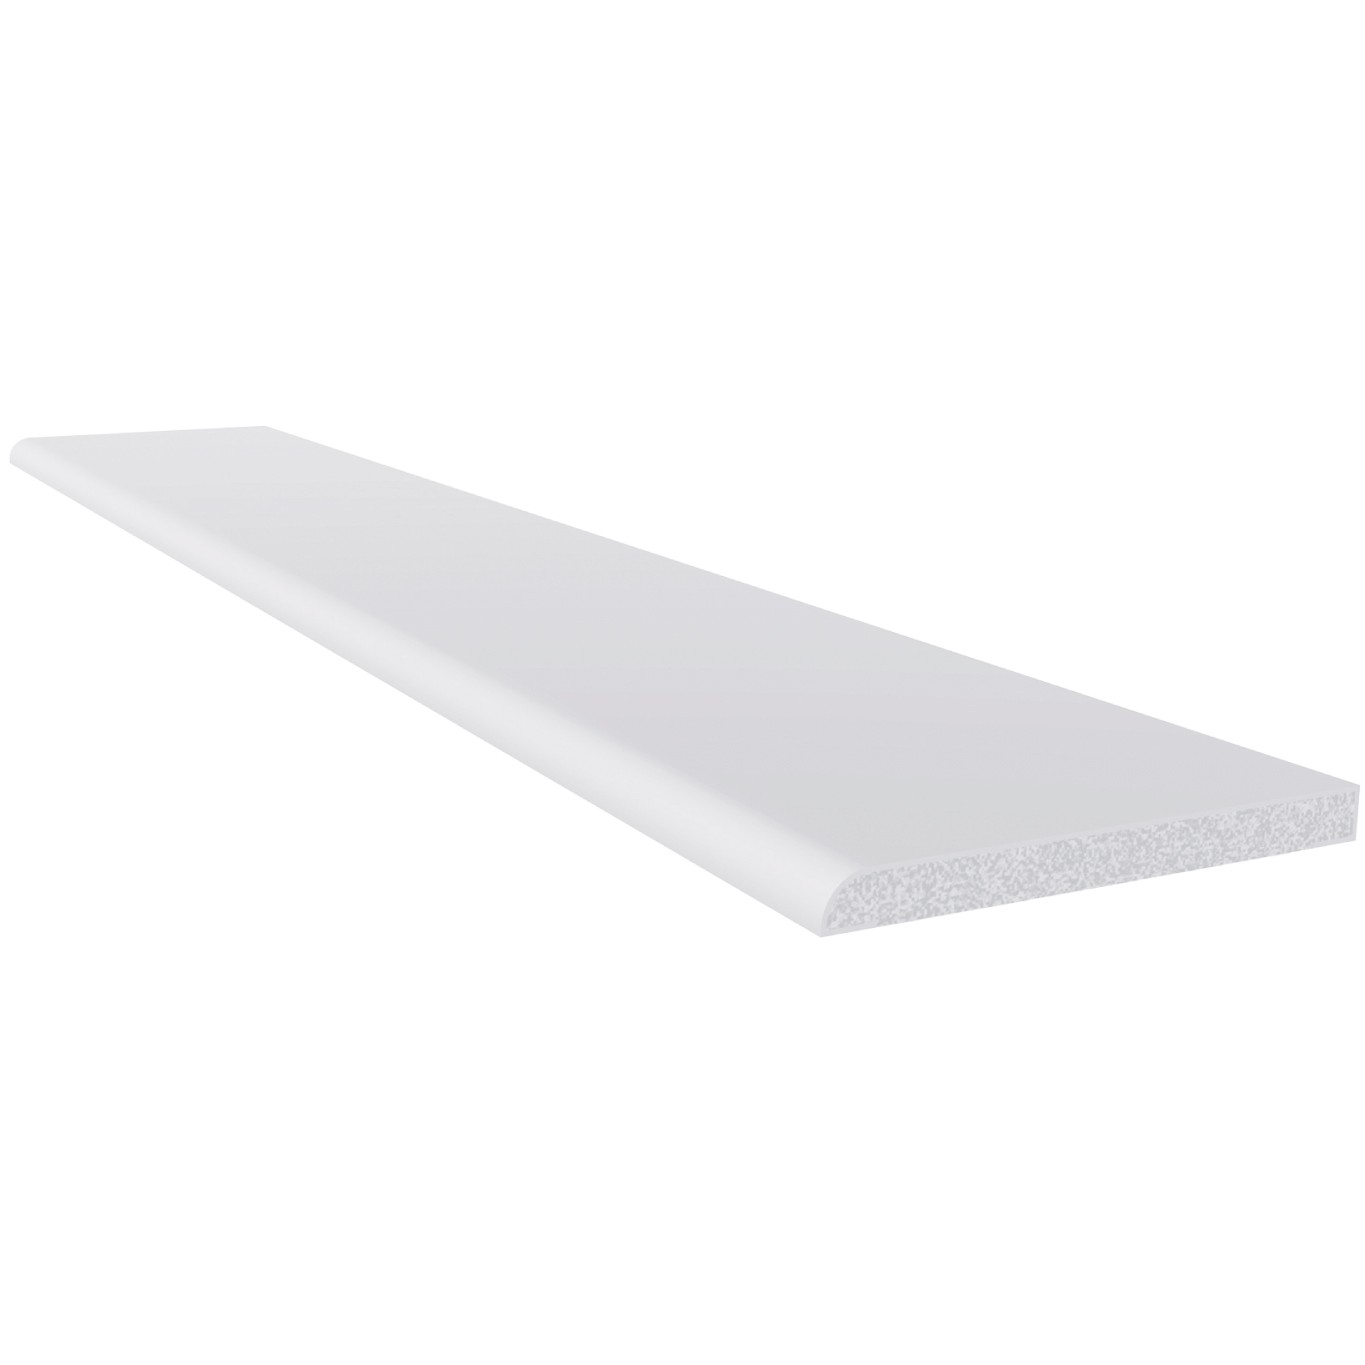 Freefoam 6mm Plastic Architrave - White, 60mm, 5 metre